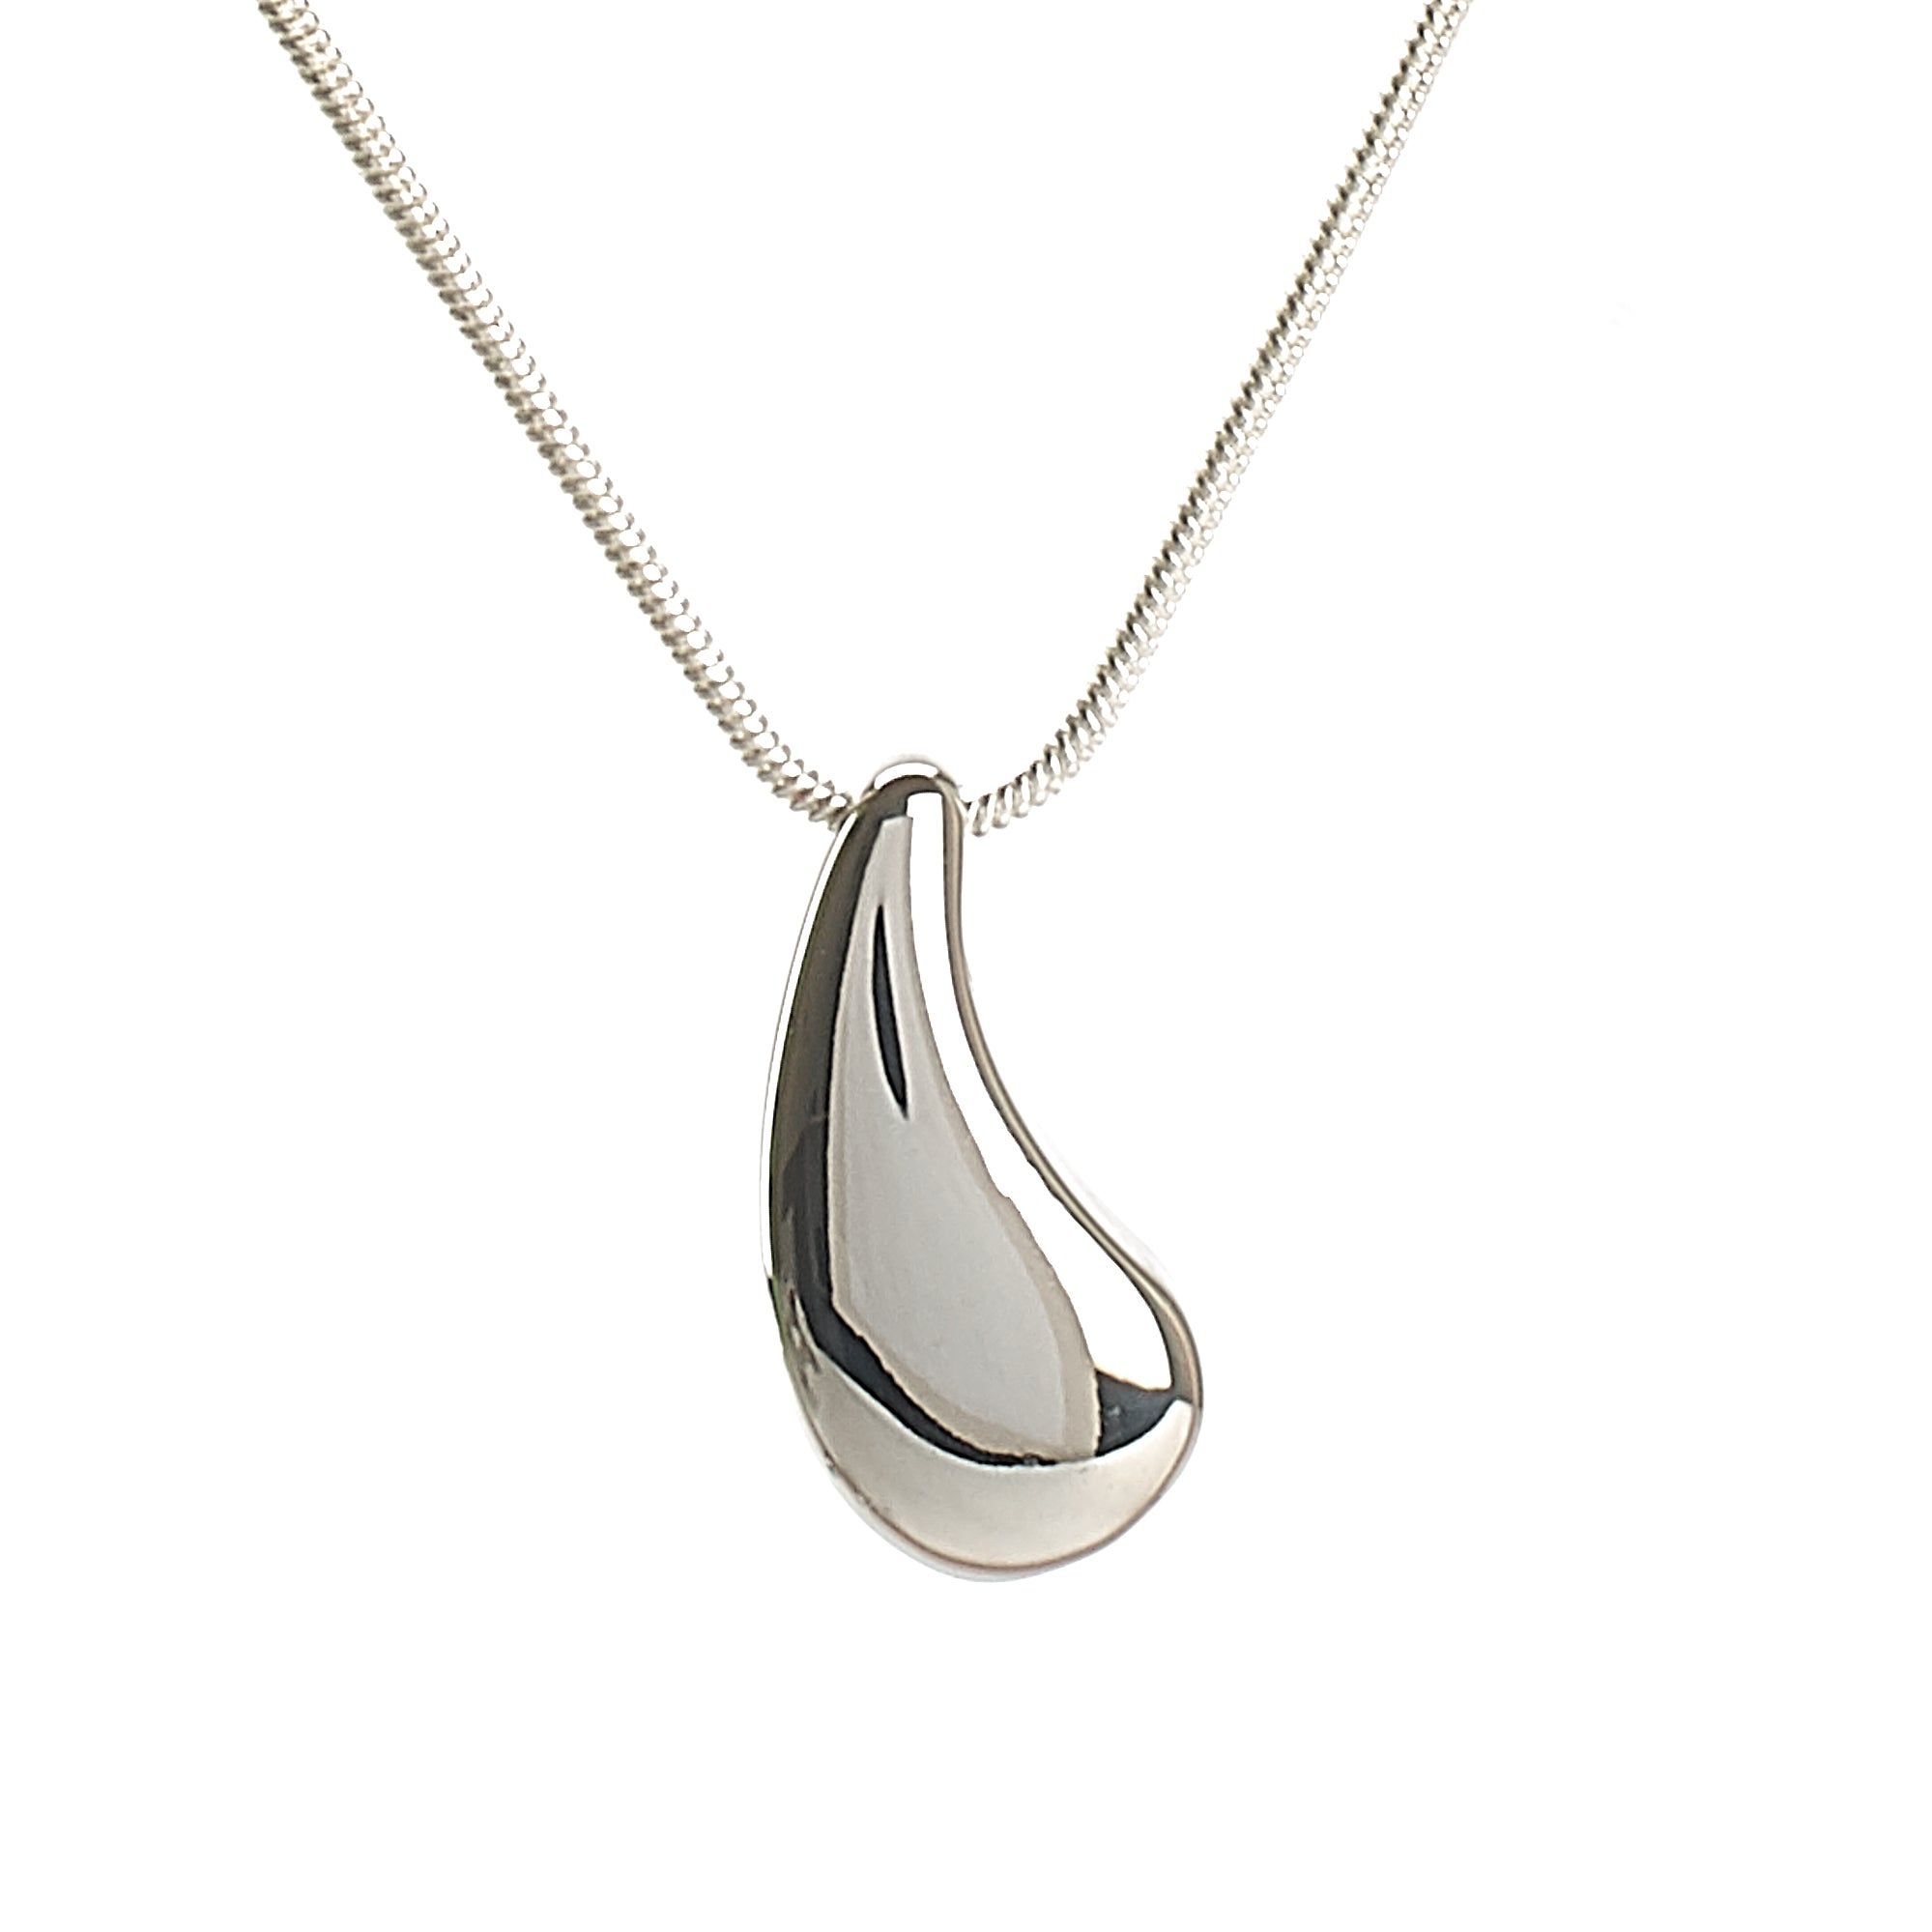 Cremation Pendant - Silver Teardrop - High Shine